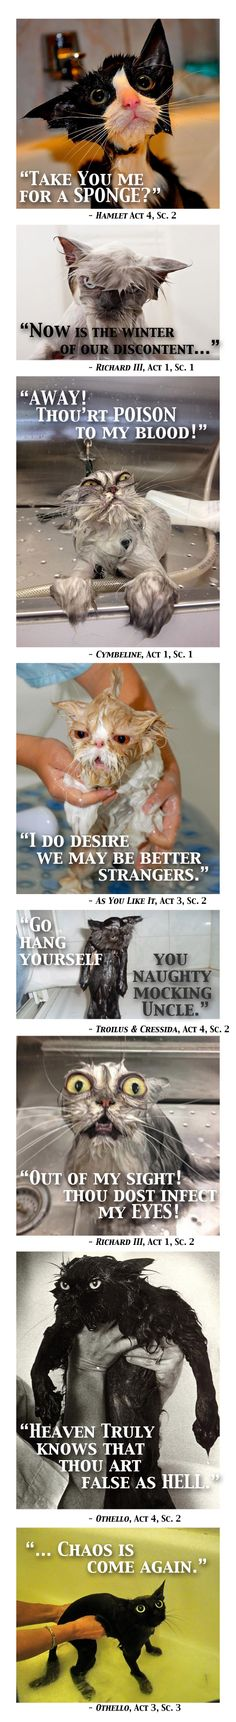 """Pinner says, """"I was imagining what cats would say, if they spoke in Shakespearean verse (Based on """"22 Hilarious Wet Cats"""" from LittleWhiteLion.com). Yep, quotes are taken out of context. So sueth me."""""""